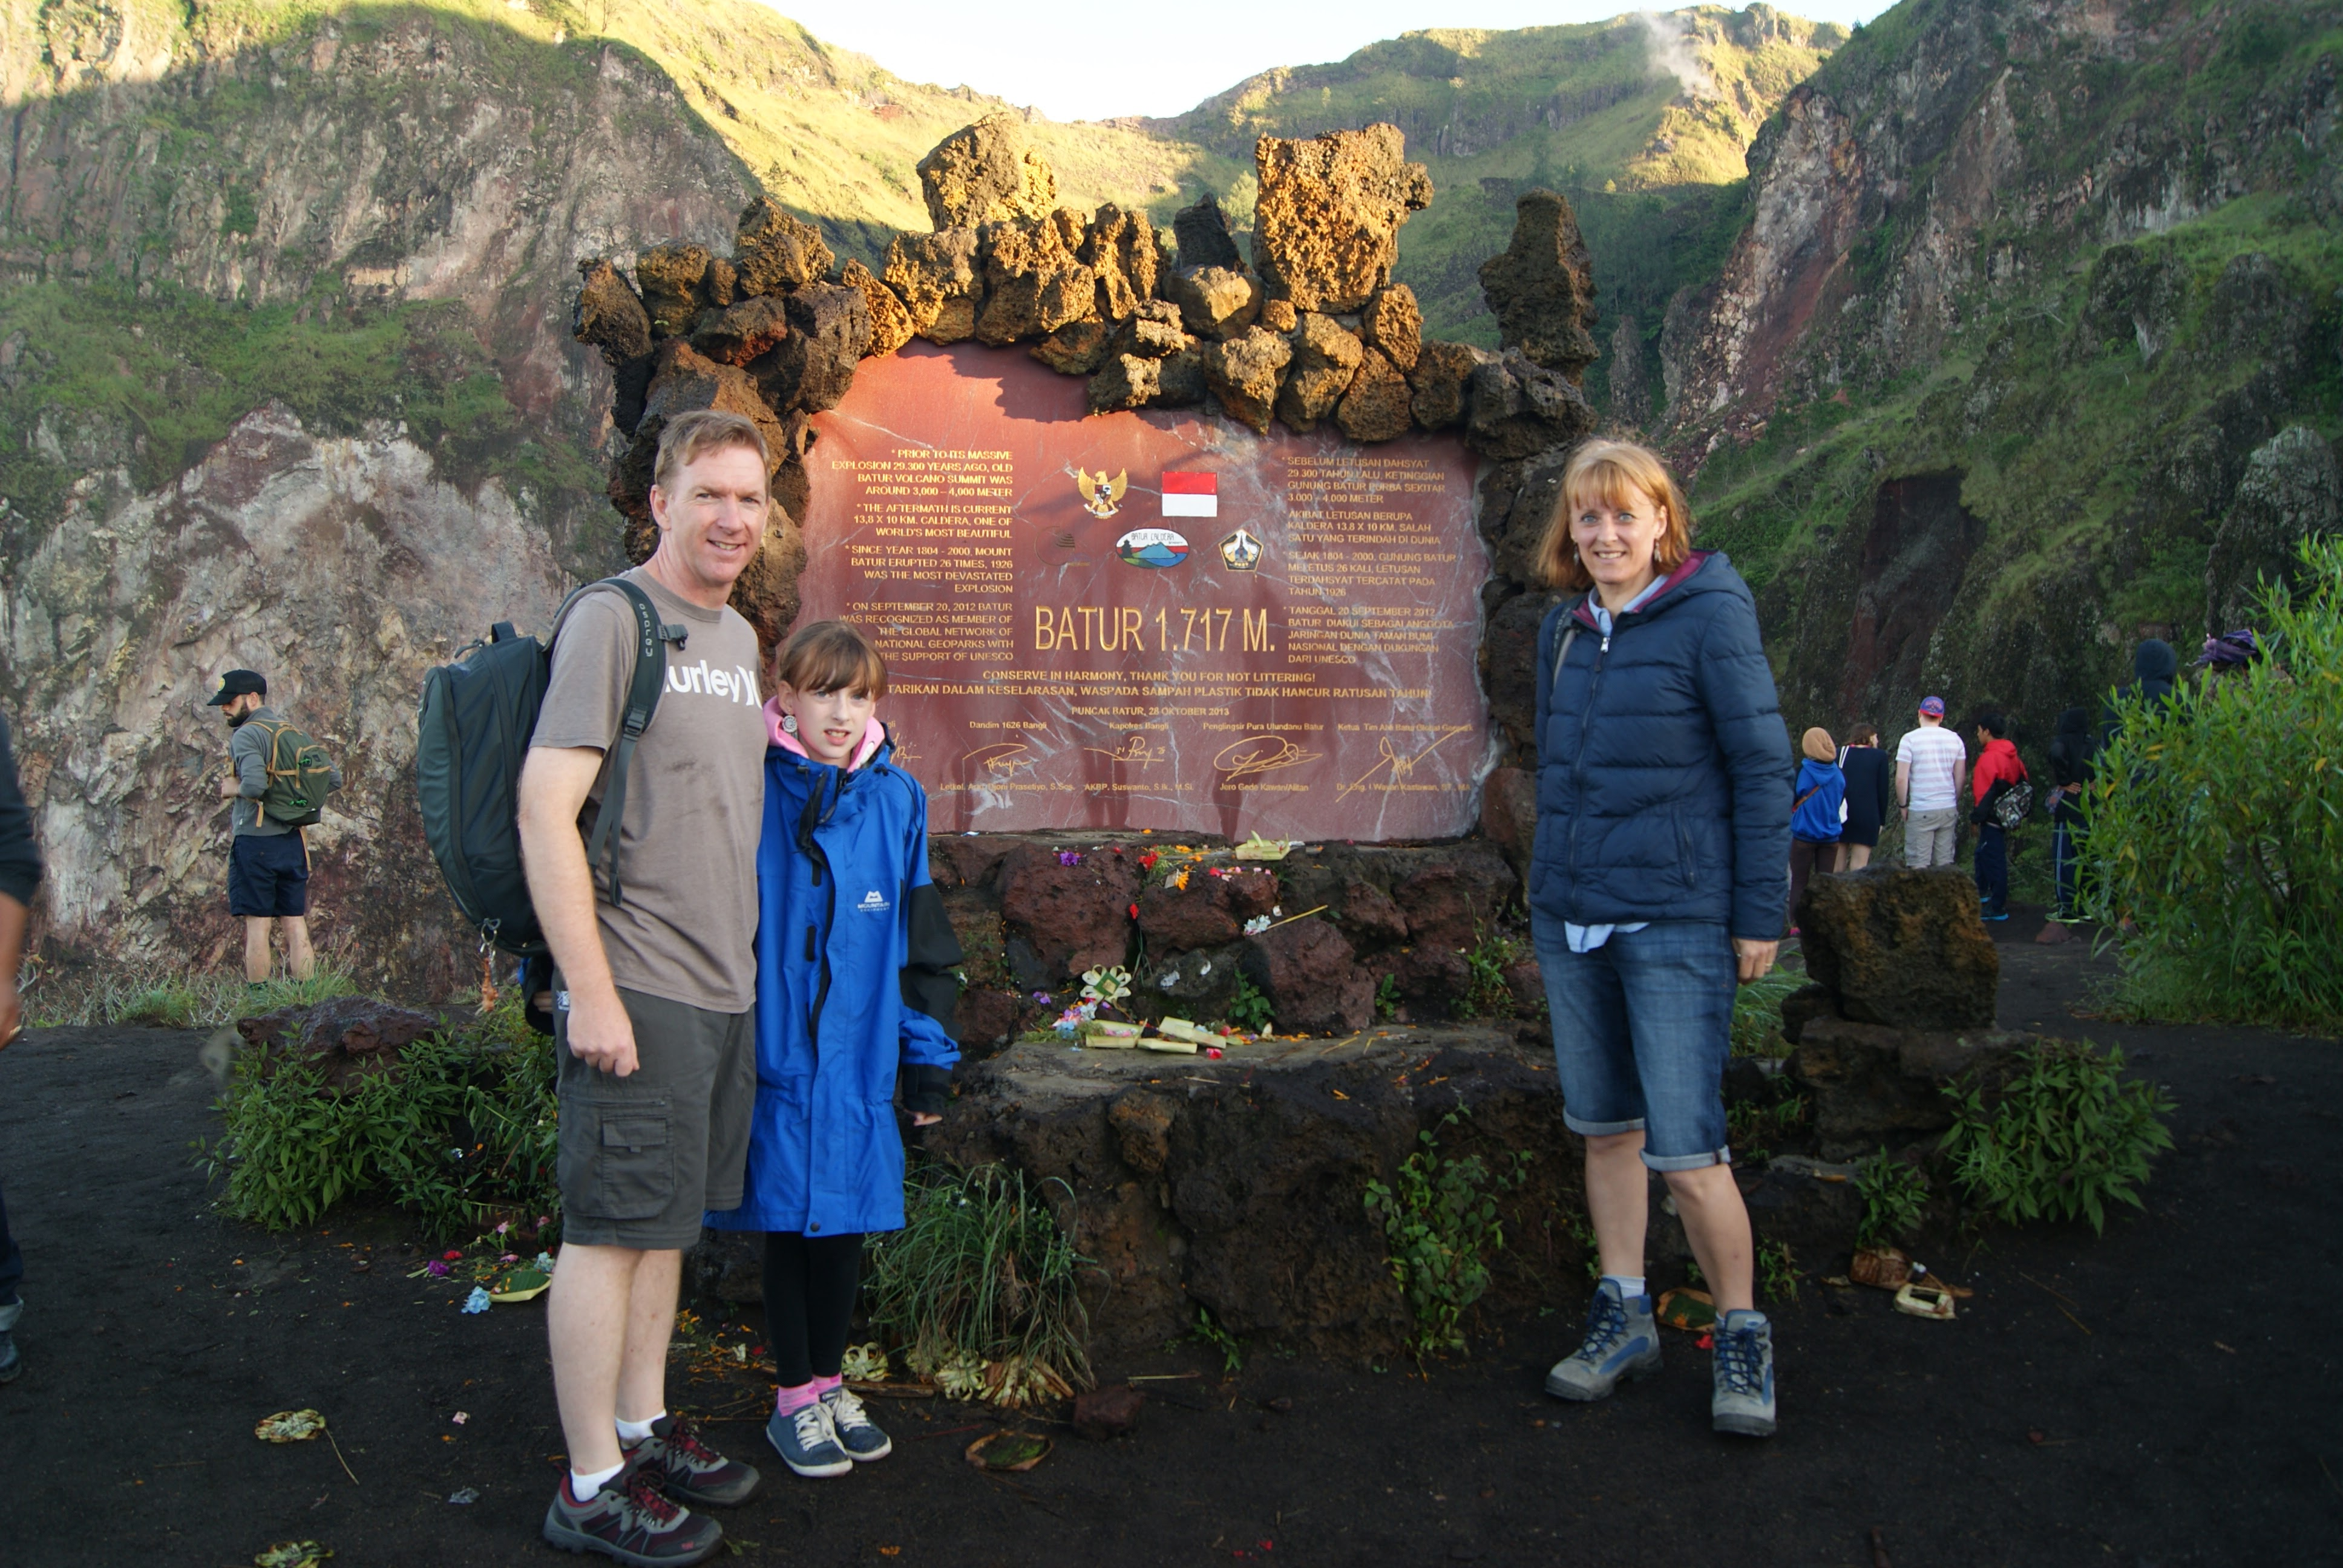 Things to do in Ubud Bali - The Summit Of Mount Batur